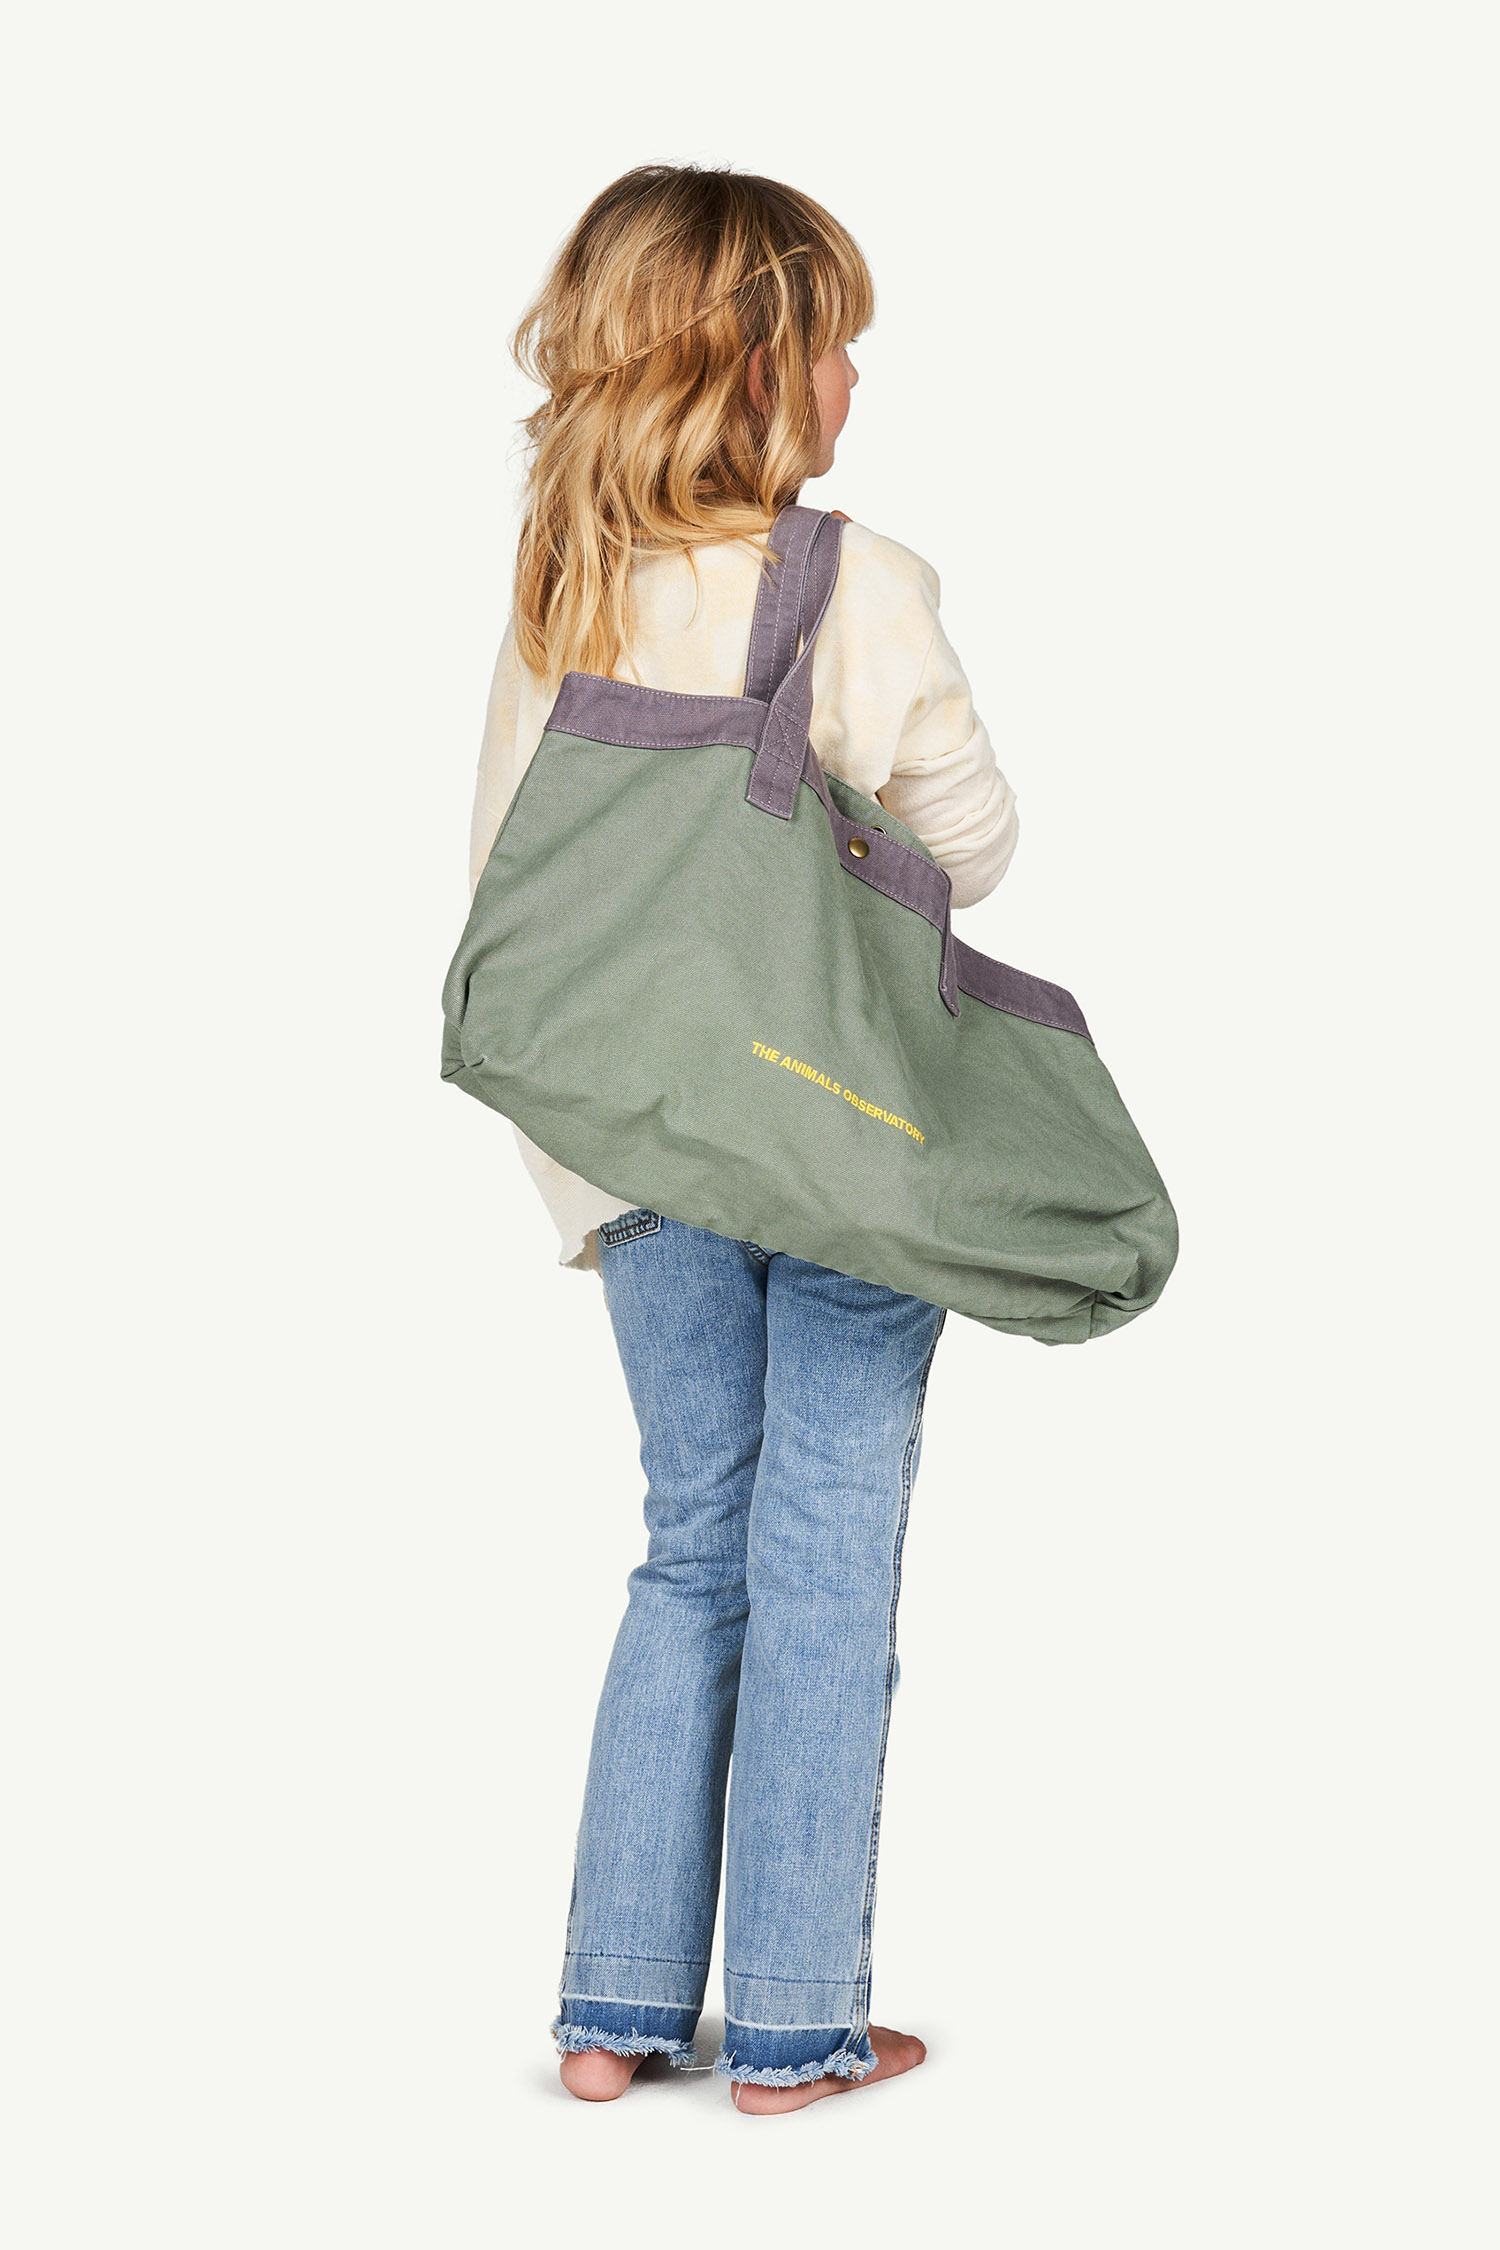 the animals observatory big canvas bag military green the animals